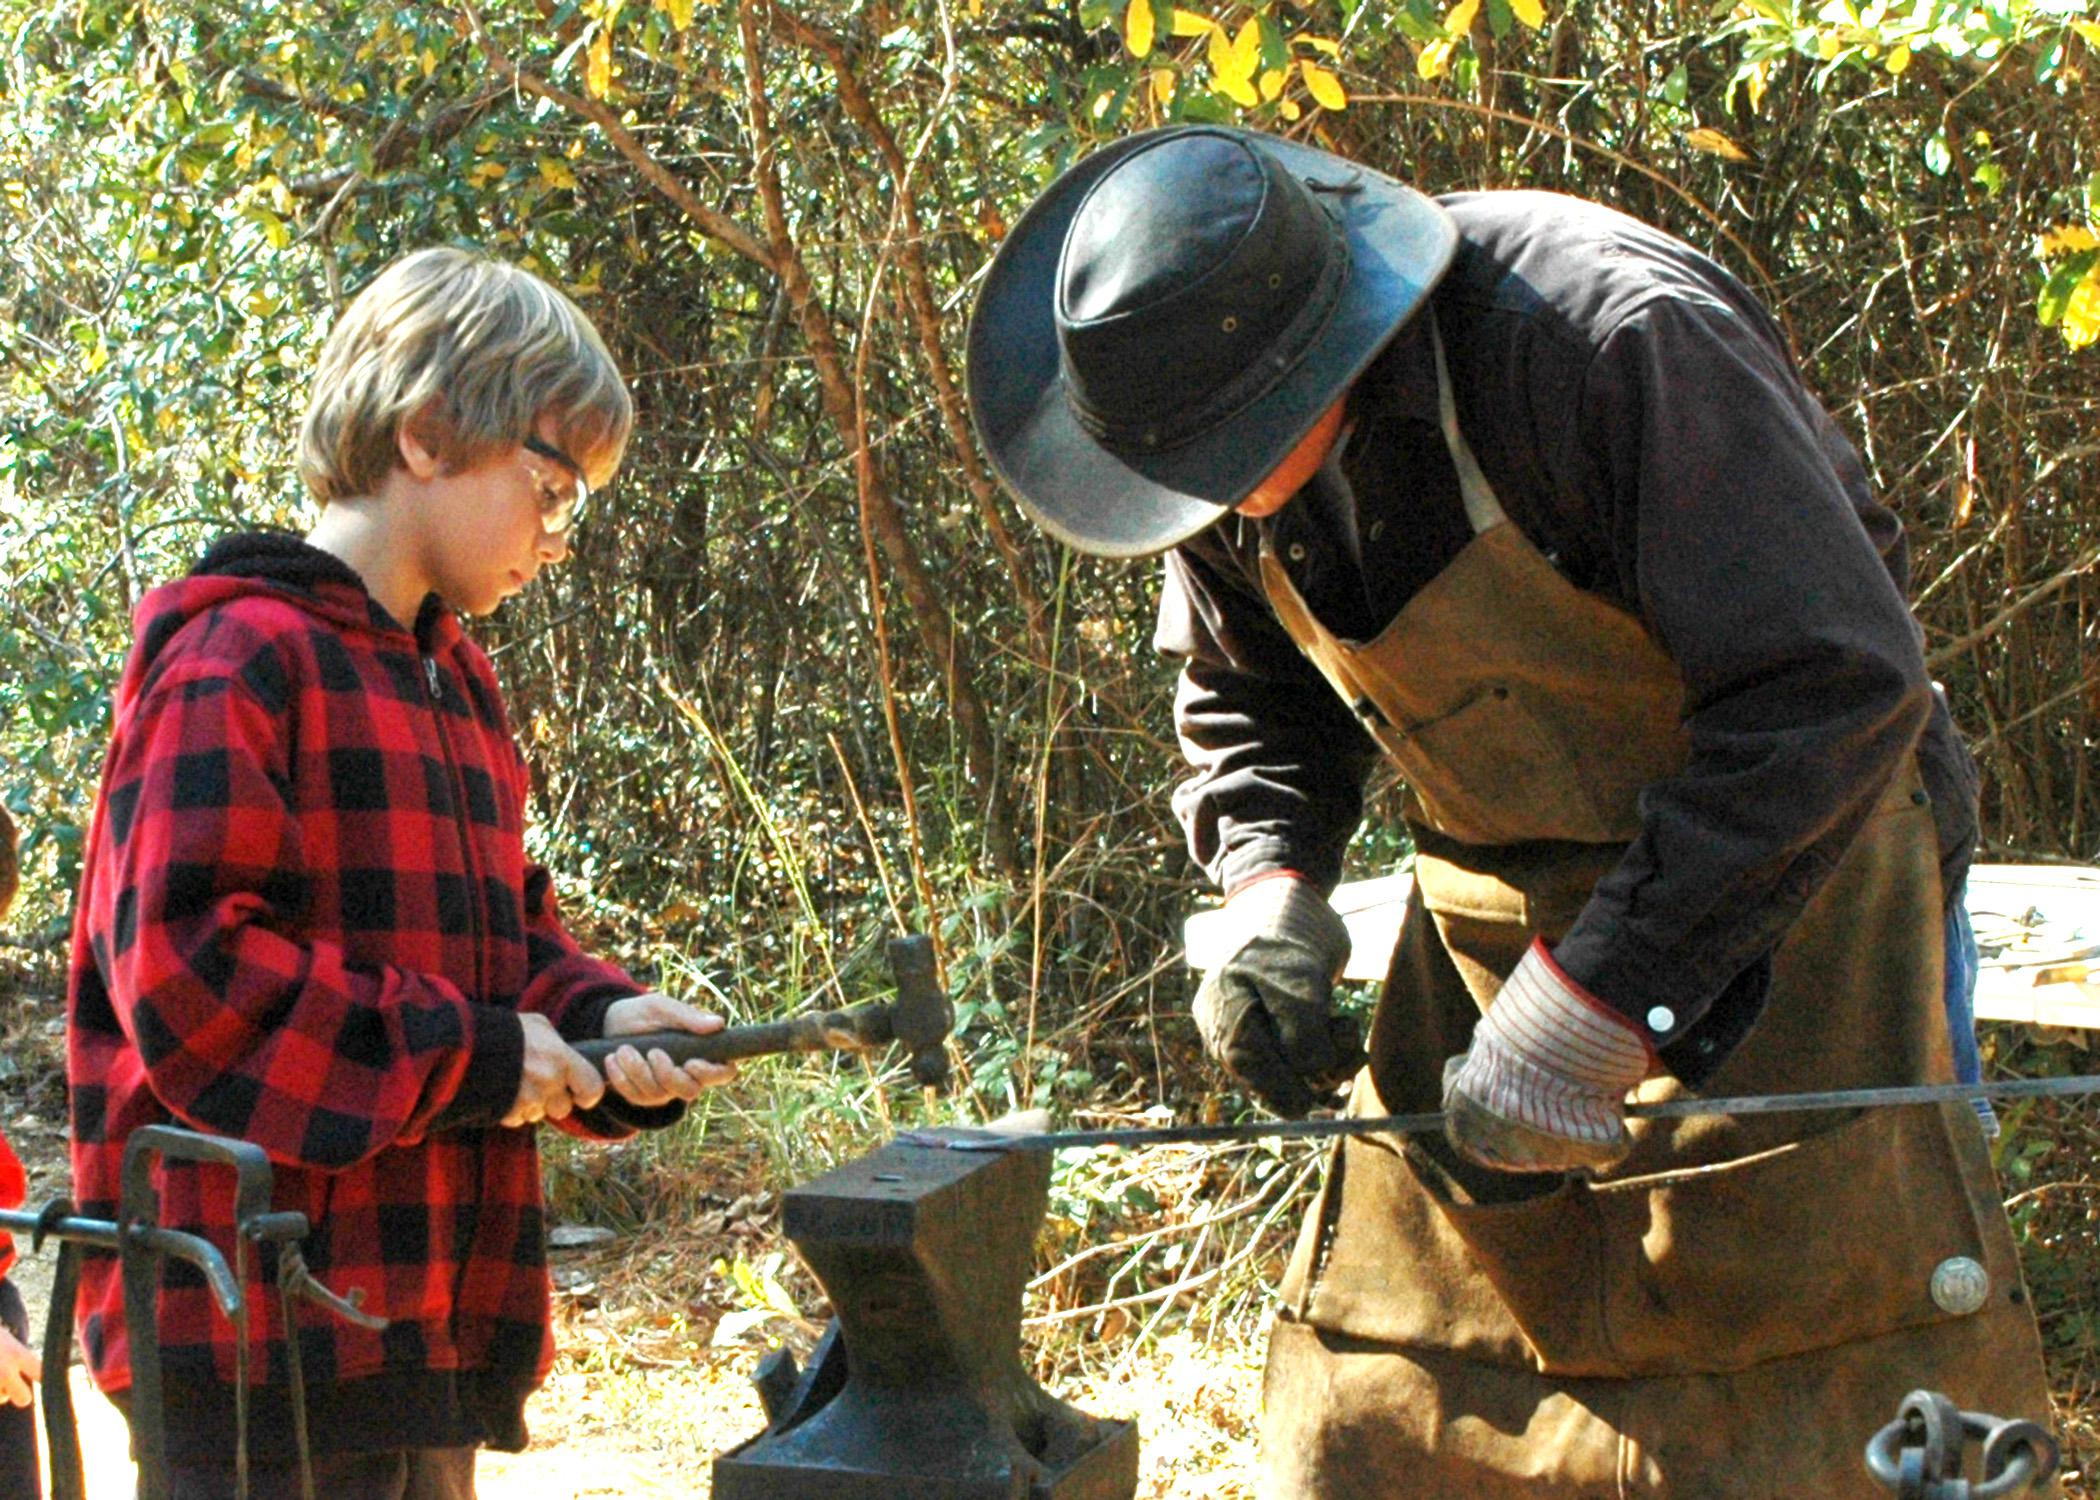 Fourth-generation blacksmith Chuck Averett helps Morgan Alexander make an arrowhead at the Piney Woods Heritage Festival held Nov. 16 and 17 at Mississippi State University's Crosby Arboretum. (MSU Ag Communications/Susan Collins-Smith)